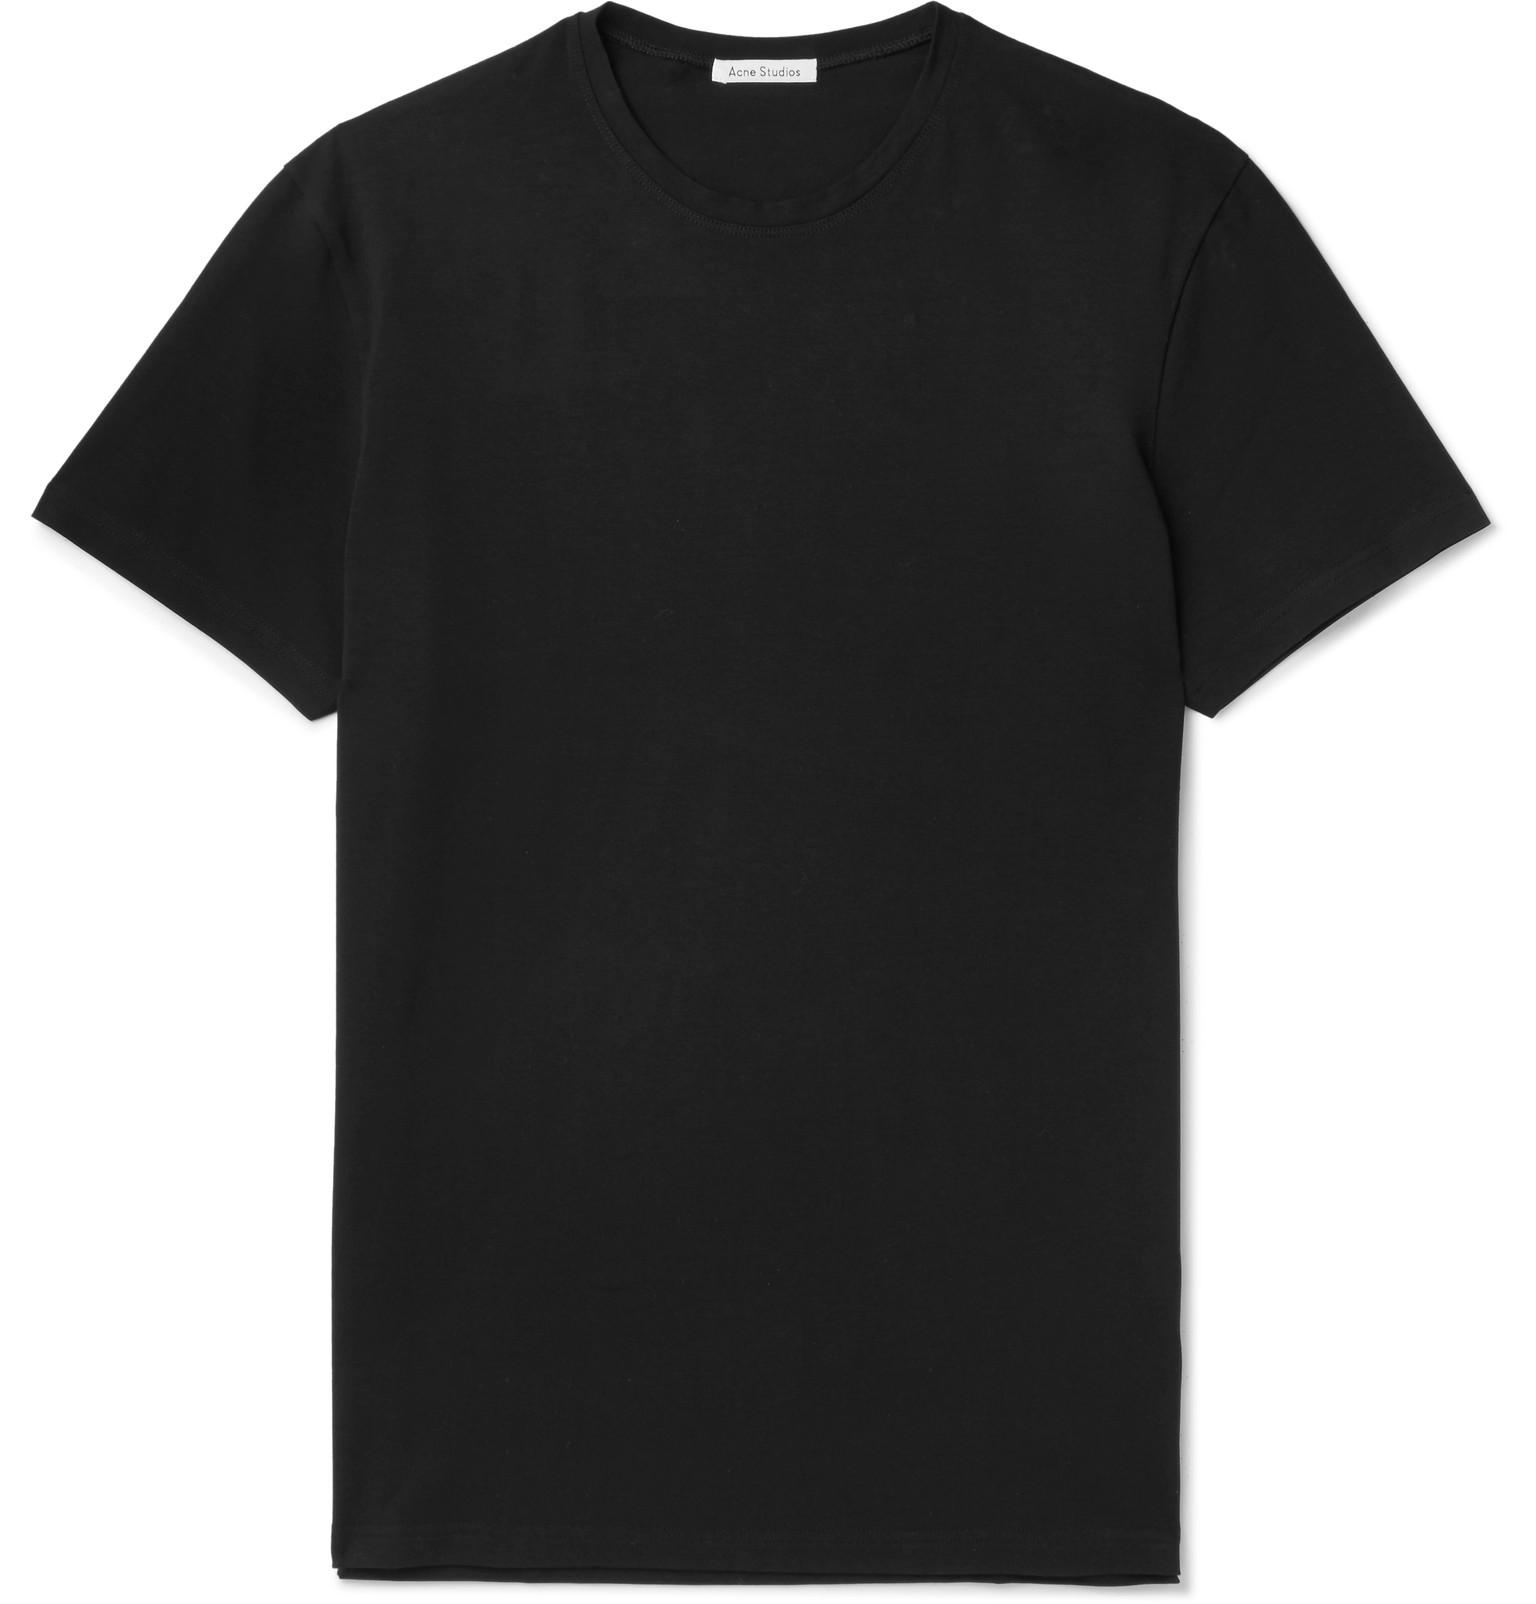 detailed look e1710 4012a acne-black-Edvin-Stretch-cotton-Jersey-T-shirt.jpeg